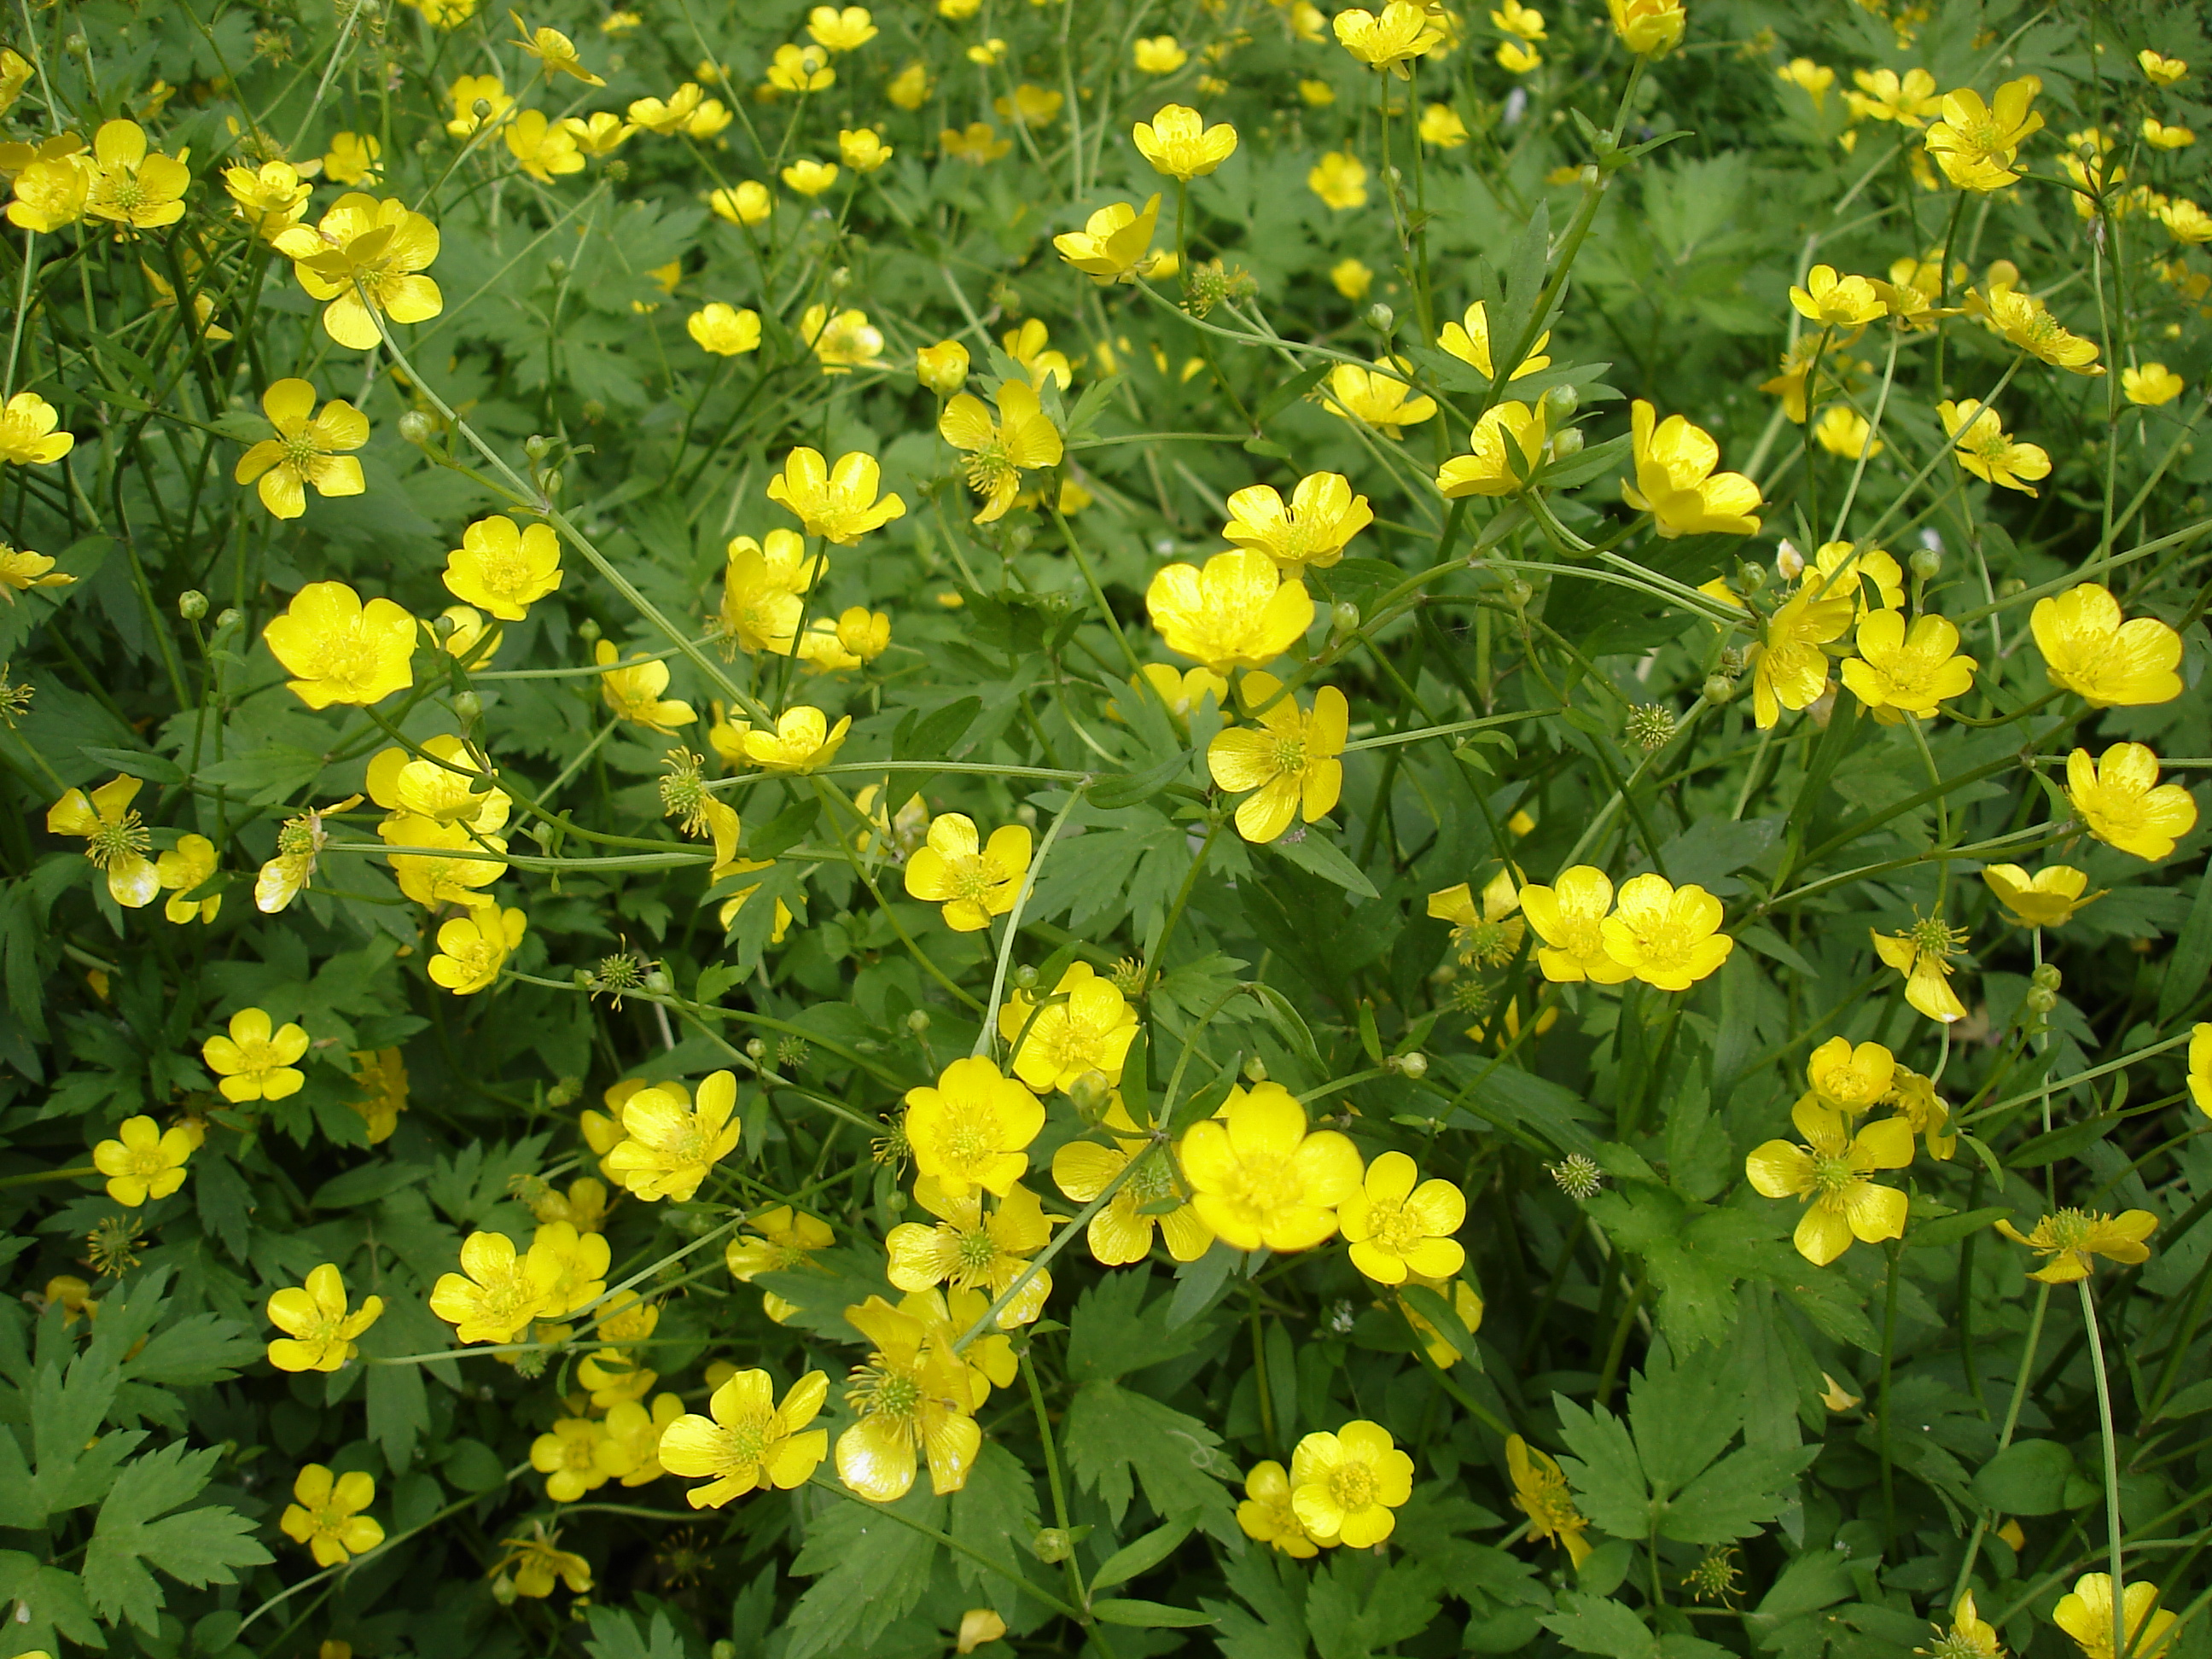 The creeping buttercup's Latin name is Ranunculus repens (Thinkstock/PA)